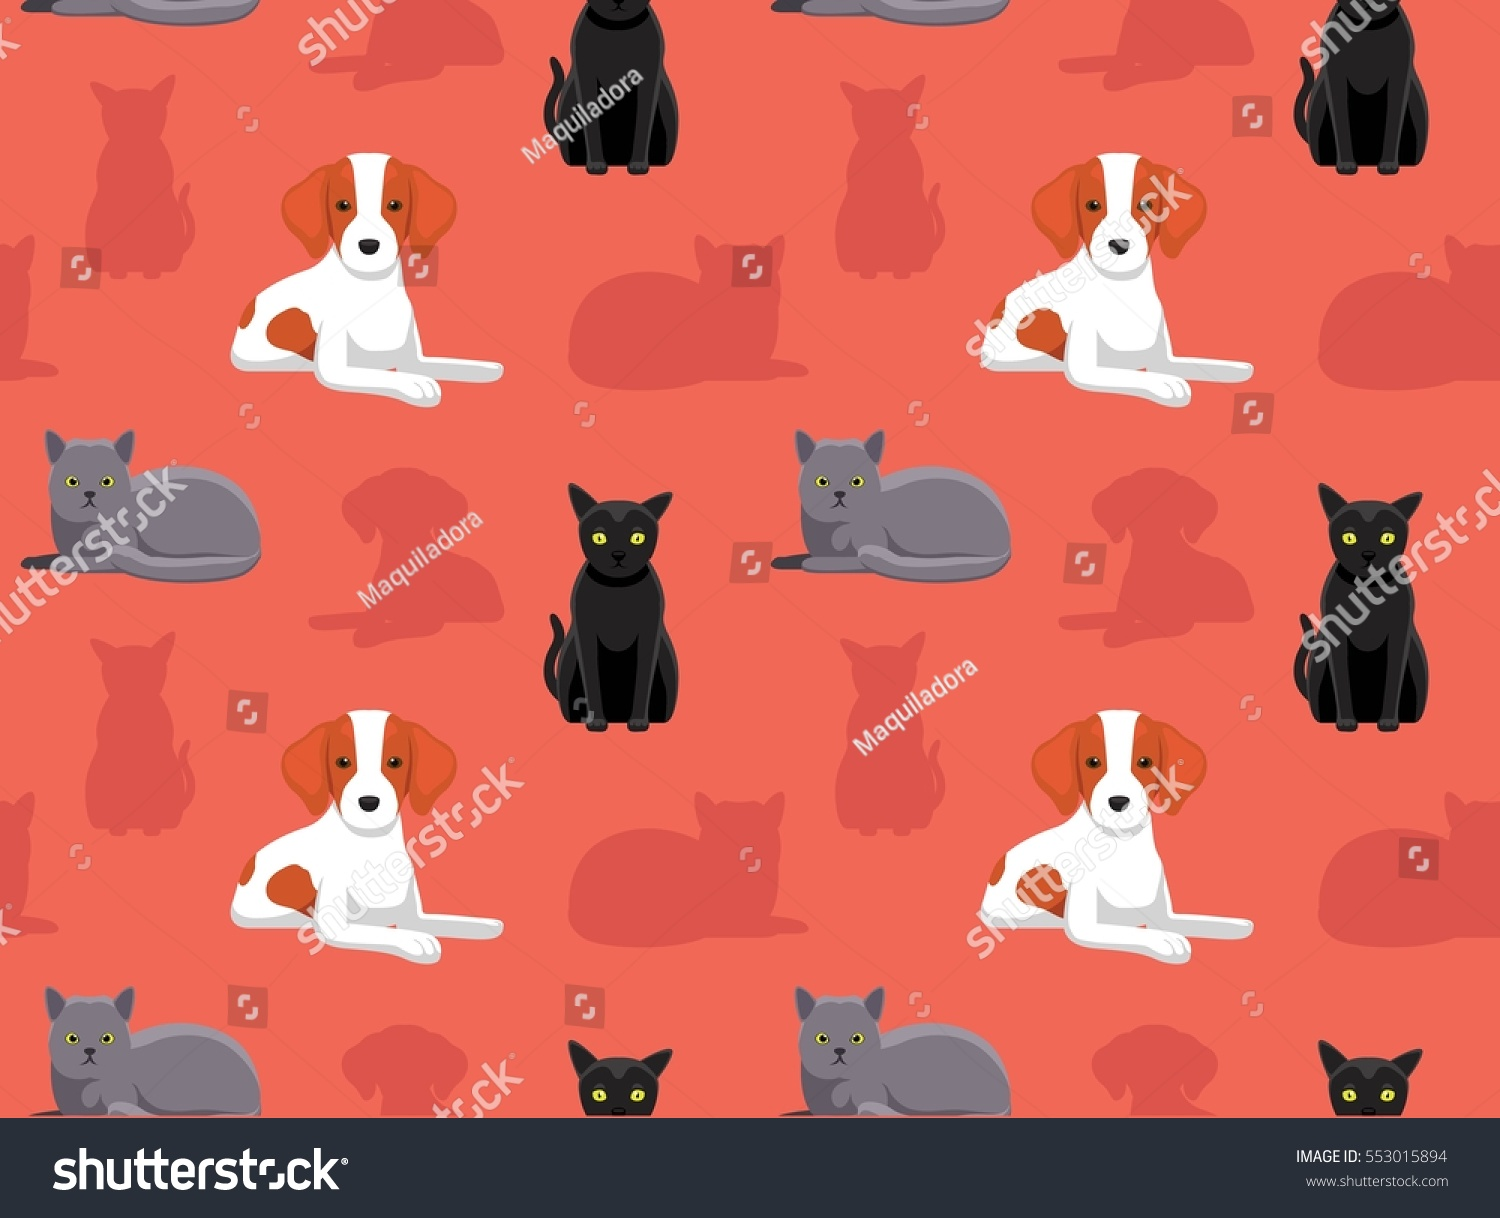 Dog Cat Wallpaper 6 553015894